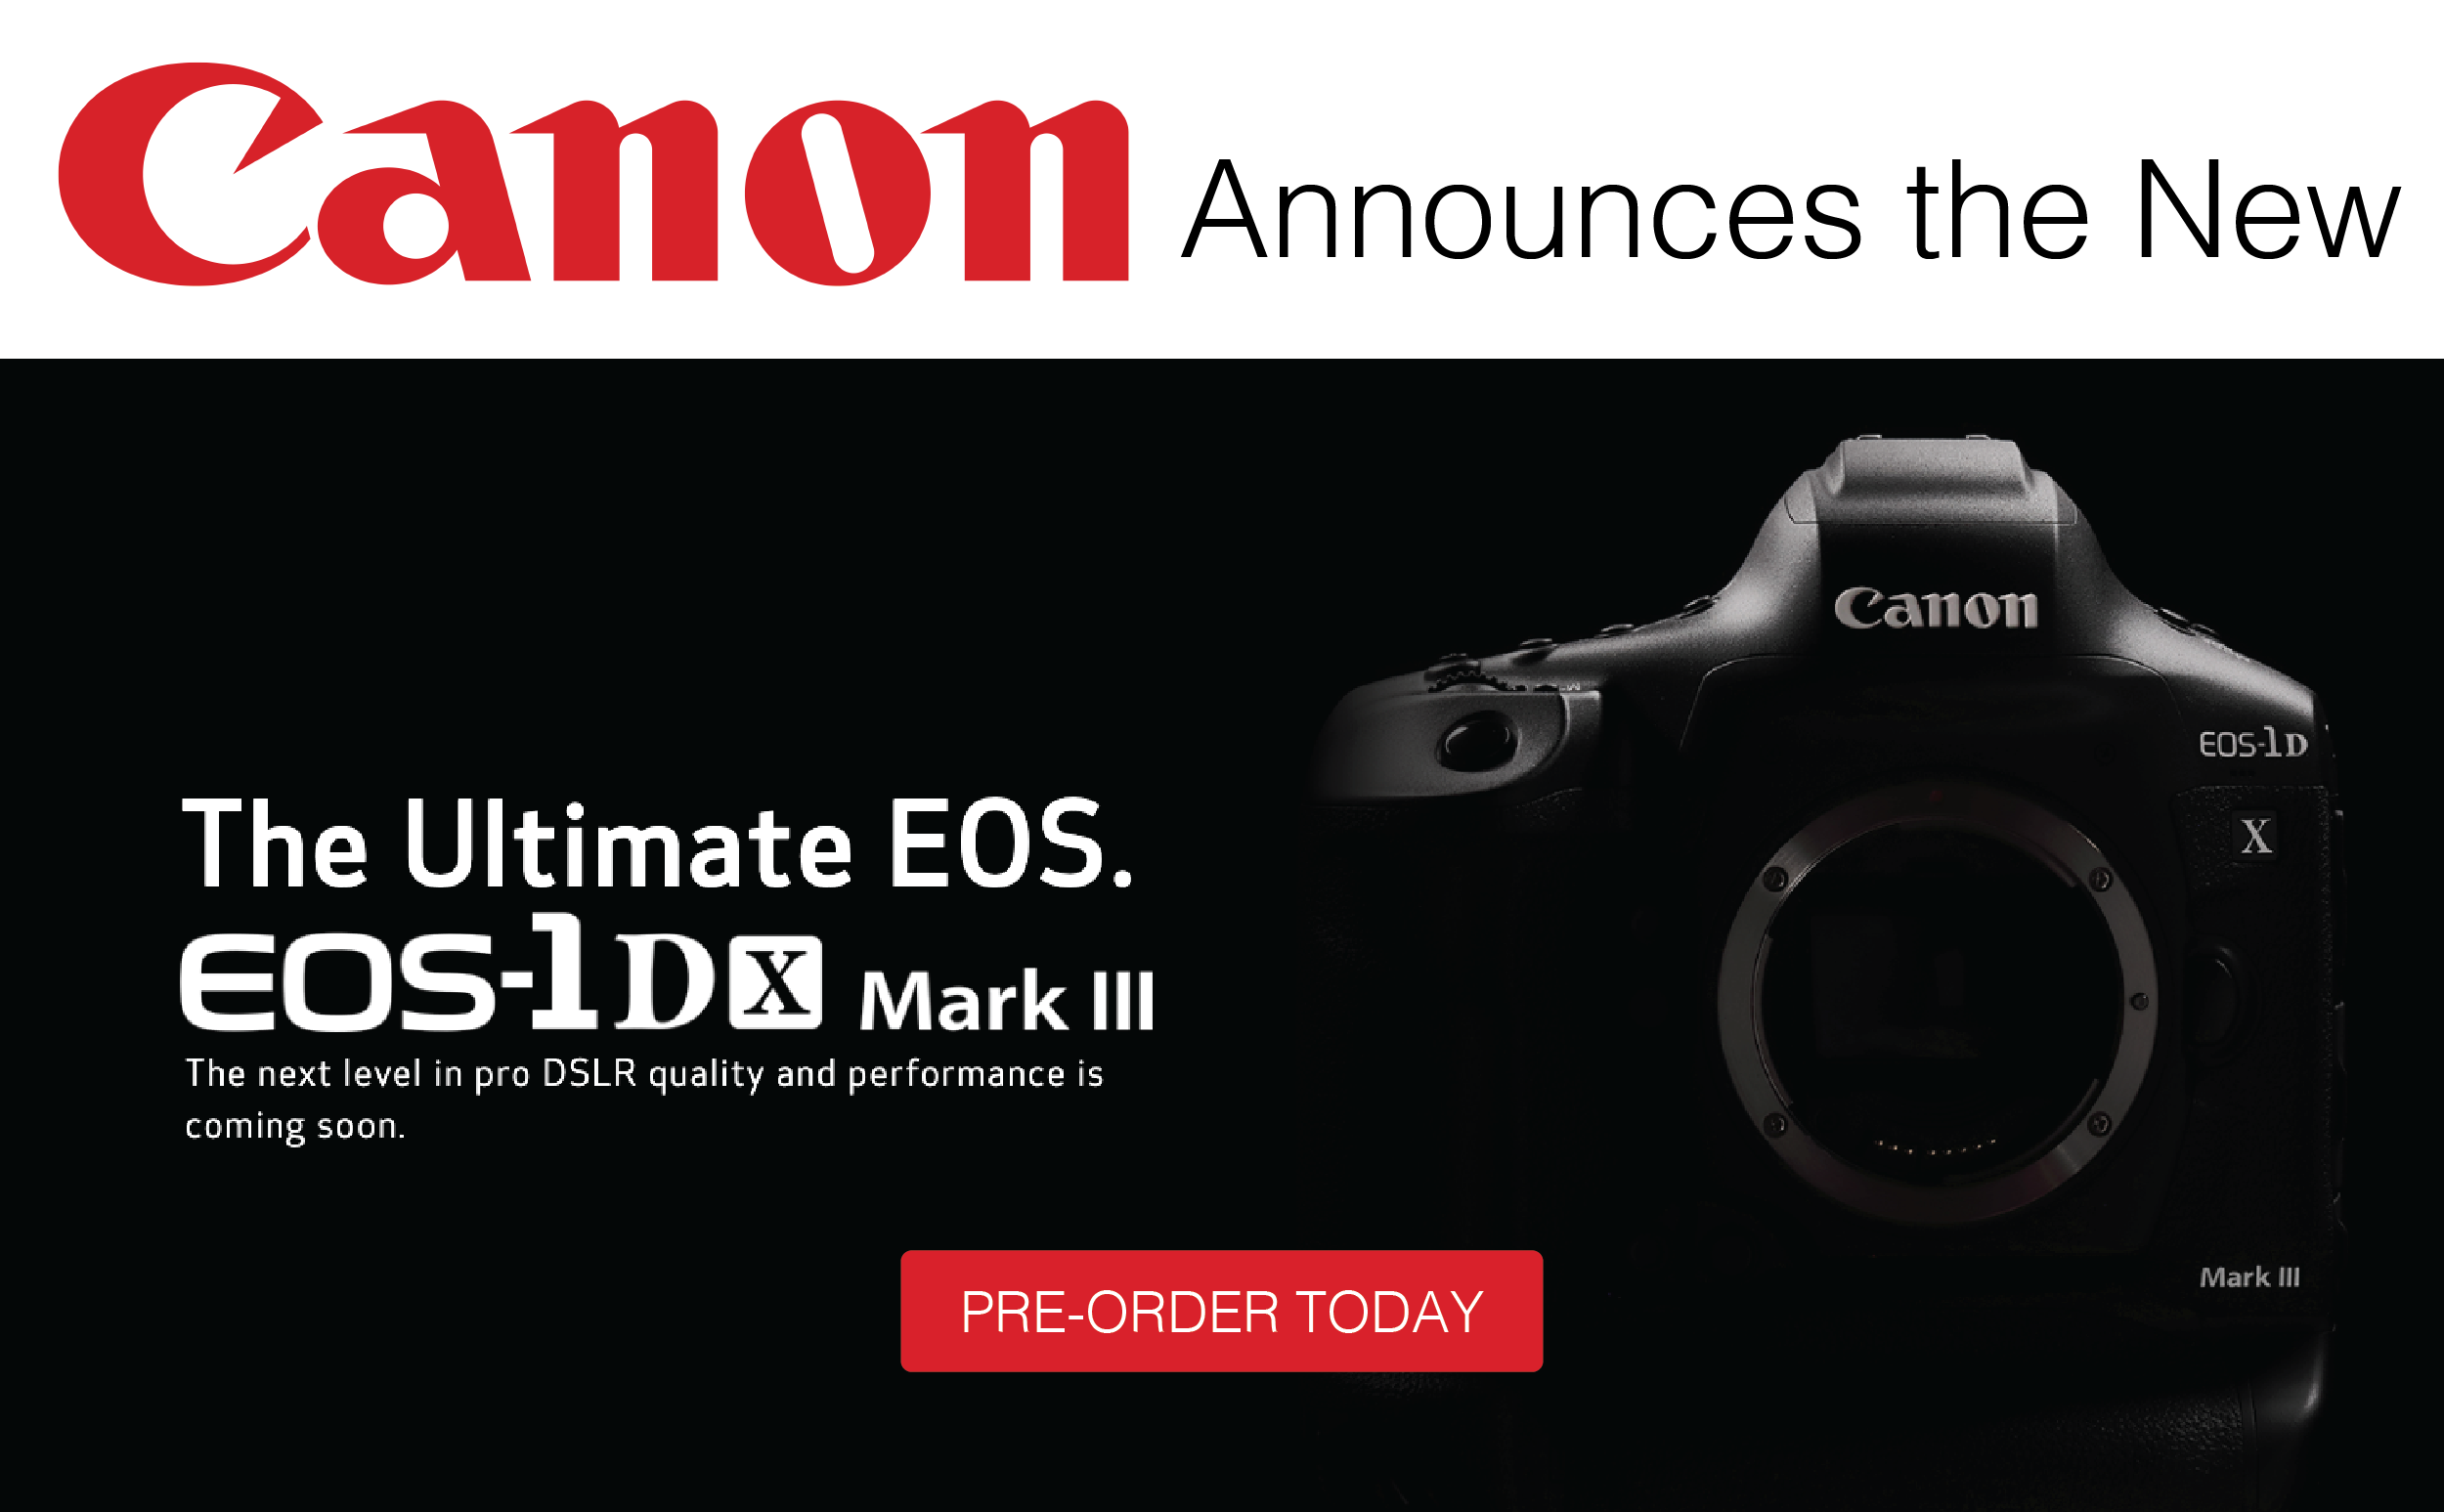 Pre-Order The New EOS-1Dx Mark III Today at Hunt's Photo!